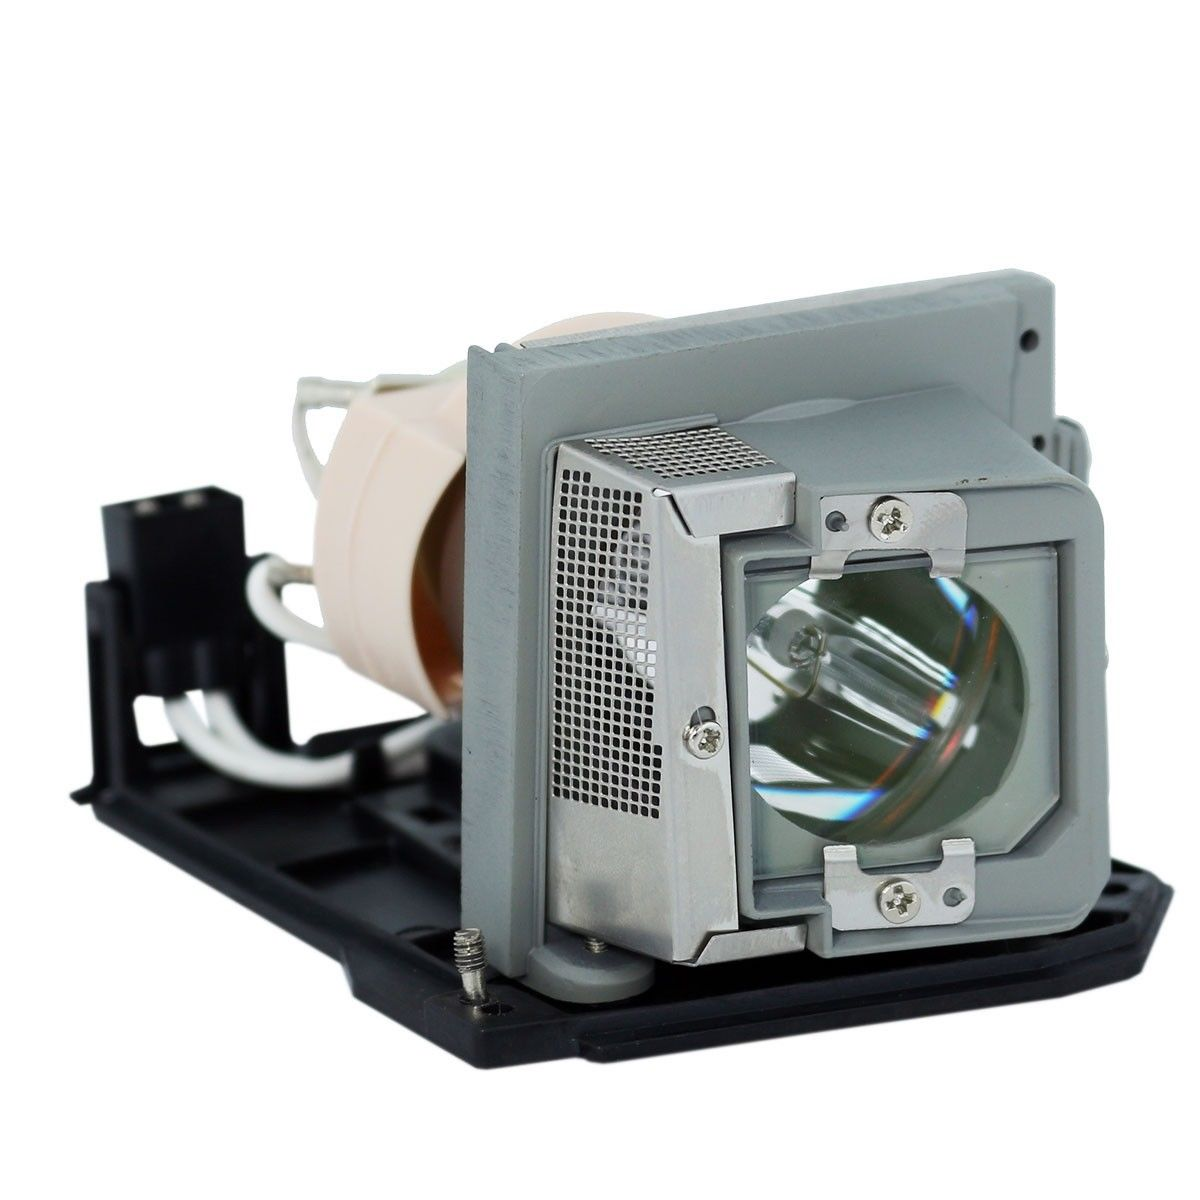 Projector Bulb BL-FP280H SP.8TE01GC01 for OPTOMA X401 W401 EX763 Projector Lamp Bulb With Housing(P-VIP 280/0.9 E20.8) original bare watts p vip 190 e20 8 bulb with housing projector lamp bl fp190a for optoma ds325 x300 s300 dx325 s300